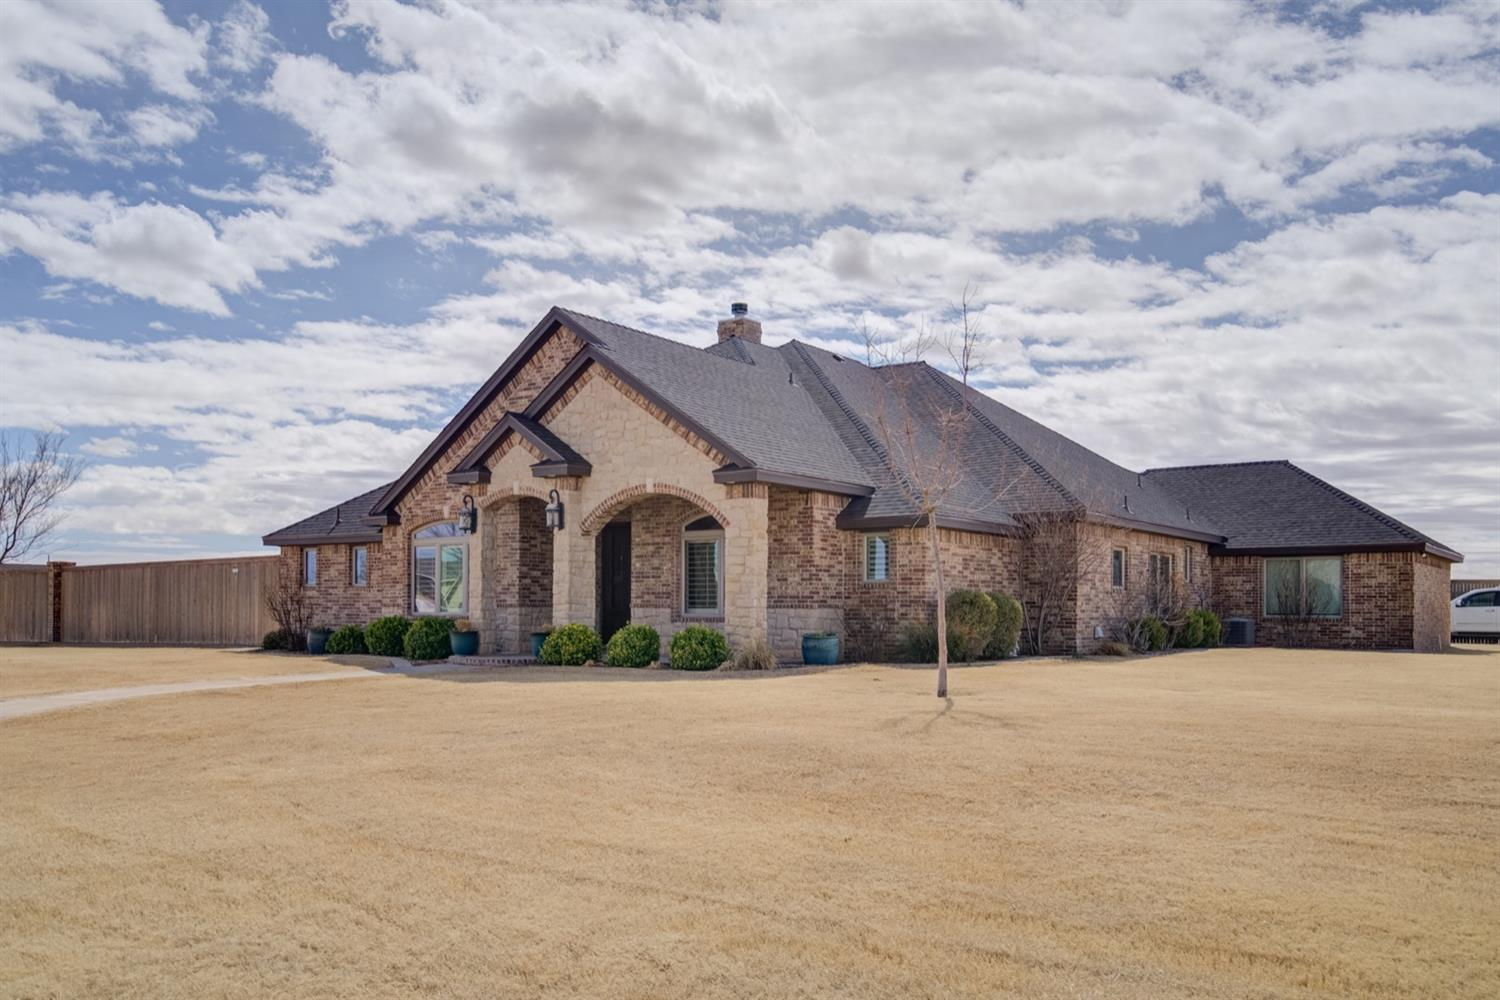 9025 County Road 6875, Lubbock in Lubbock County, TX 79407 Home for Sale